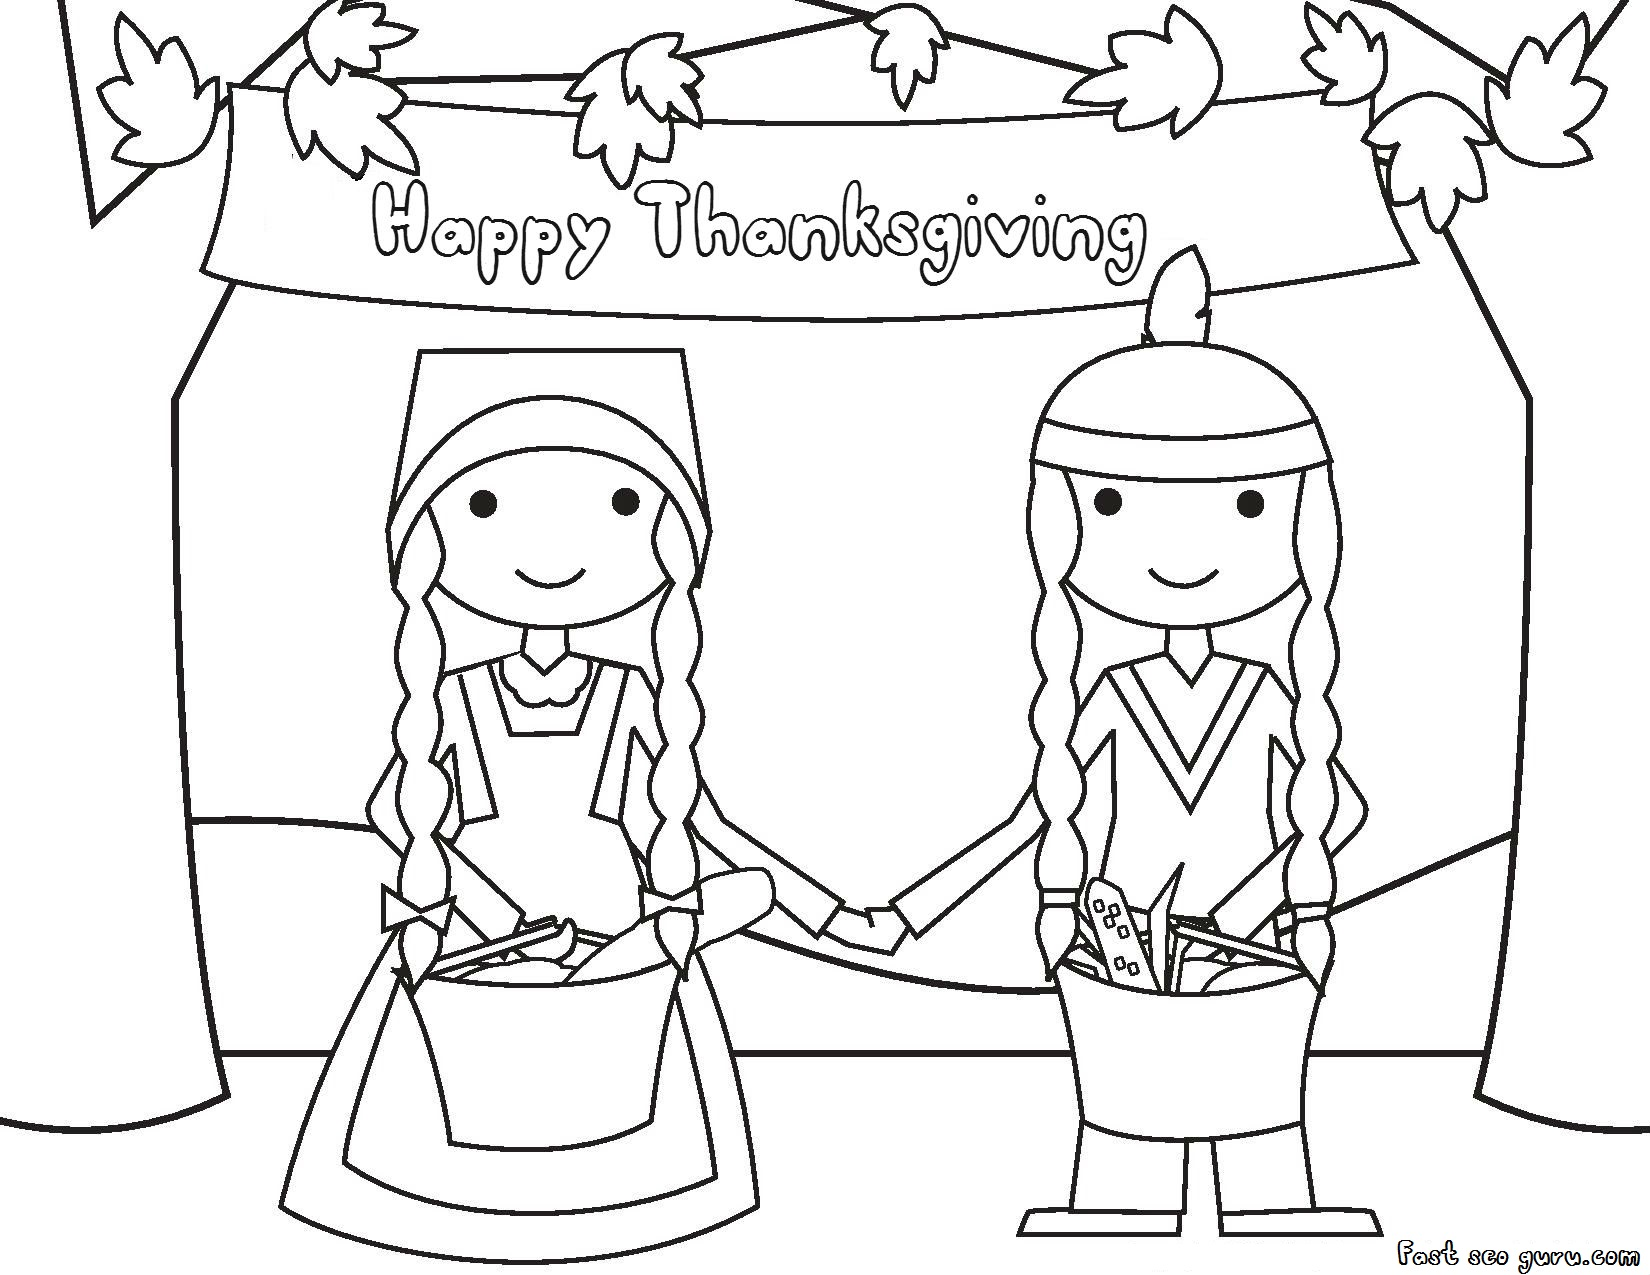 Happy Thanksgiving Native And Pilgrims Coloring Page